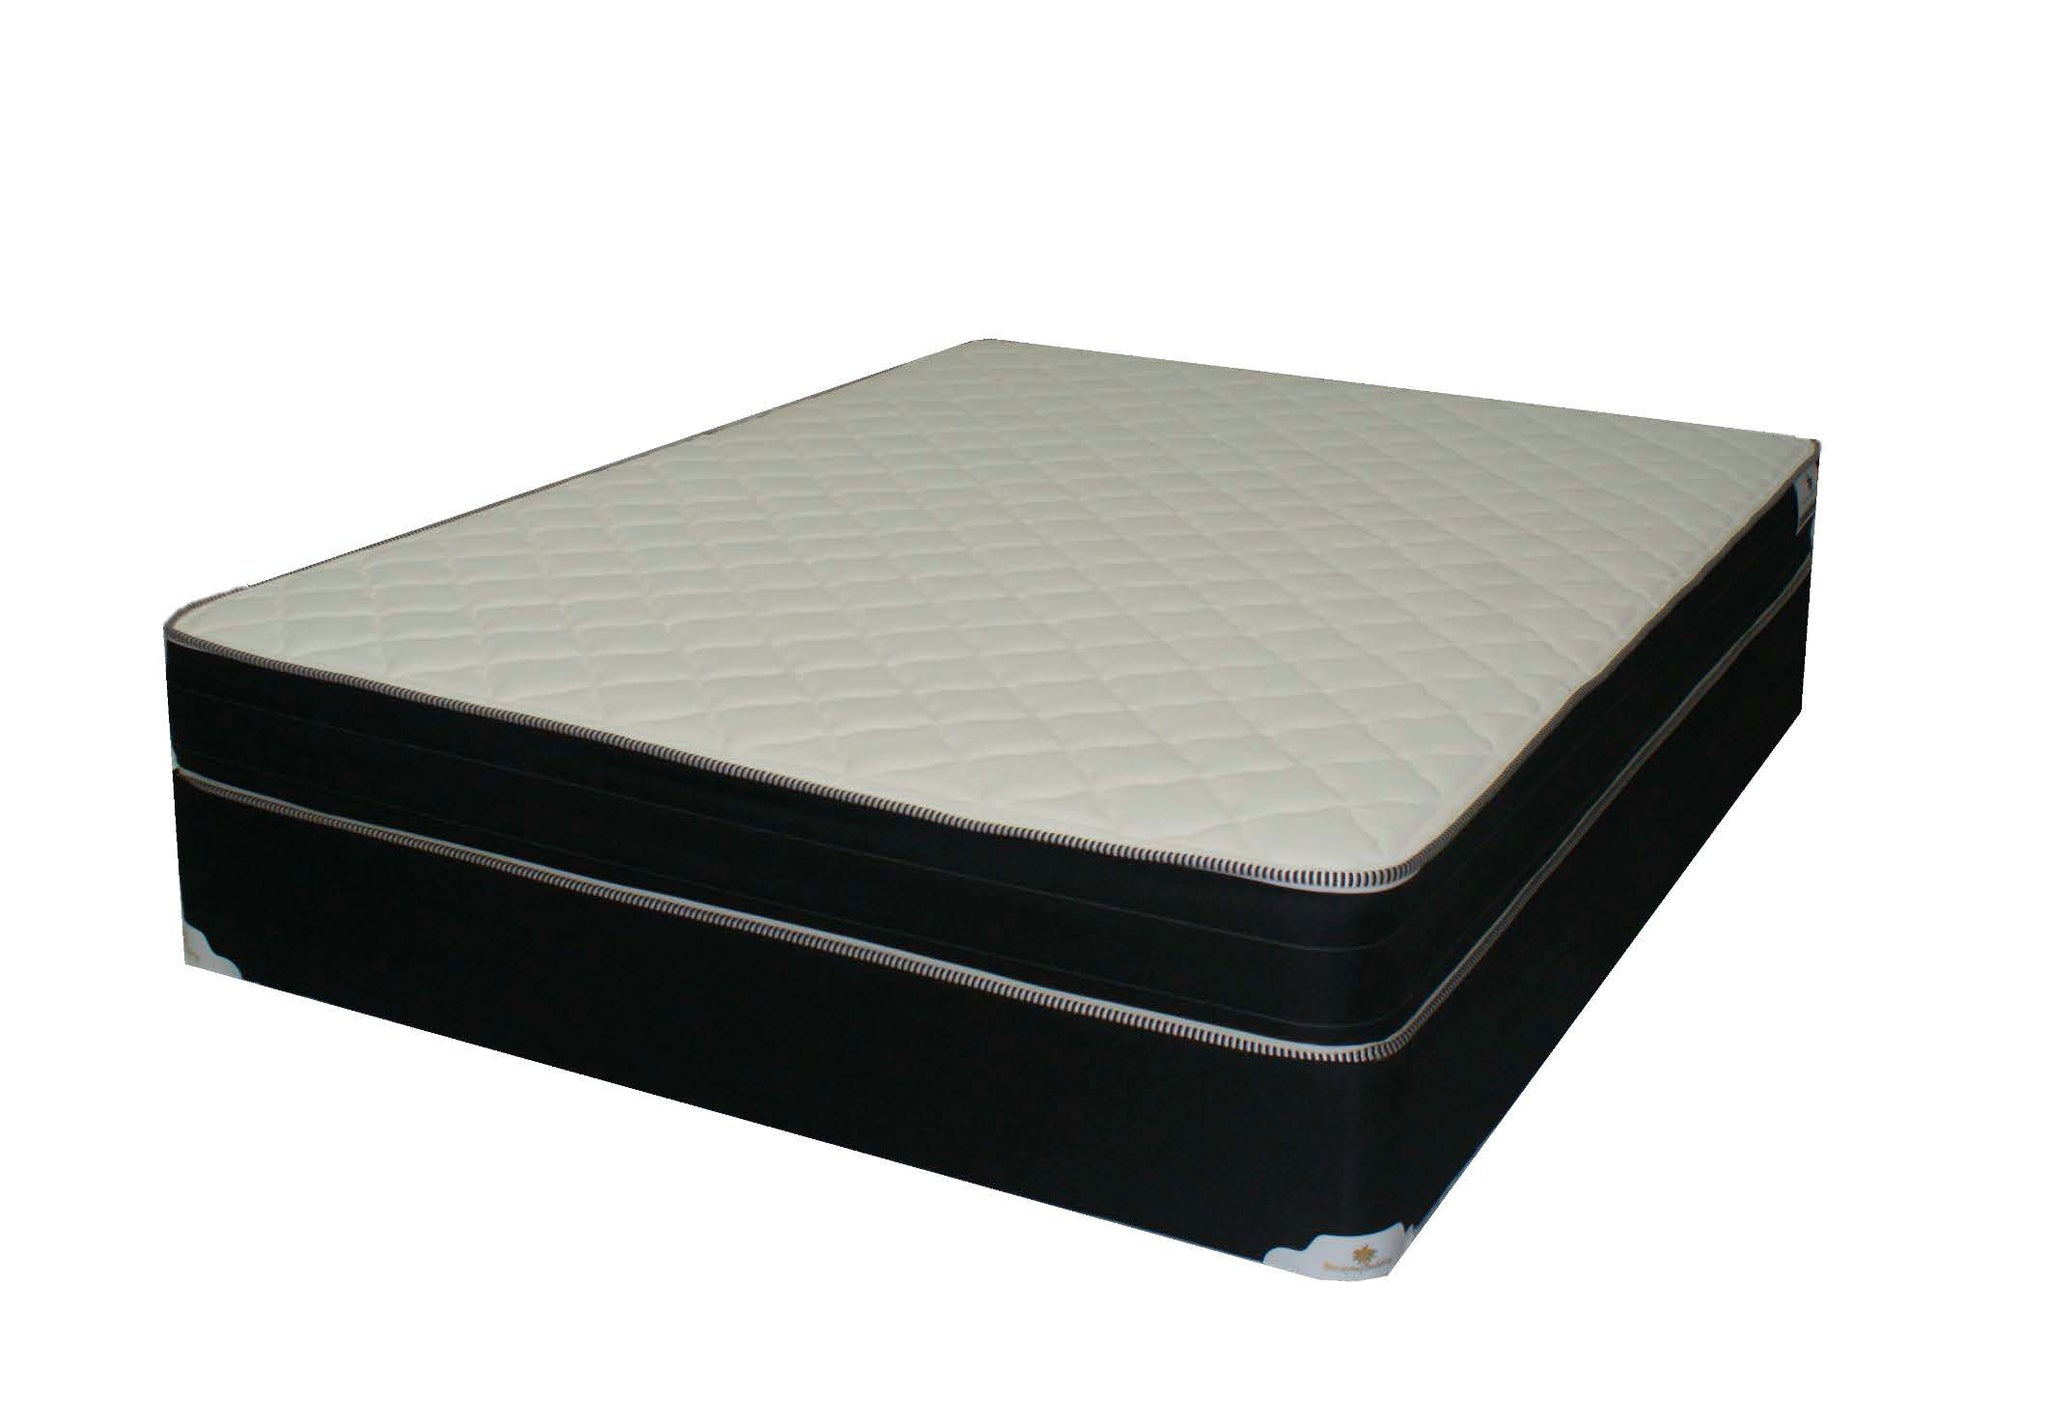 Biscayne Bedding - Marathon Mattress